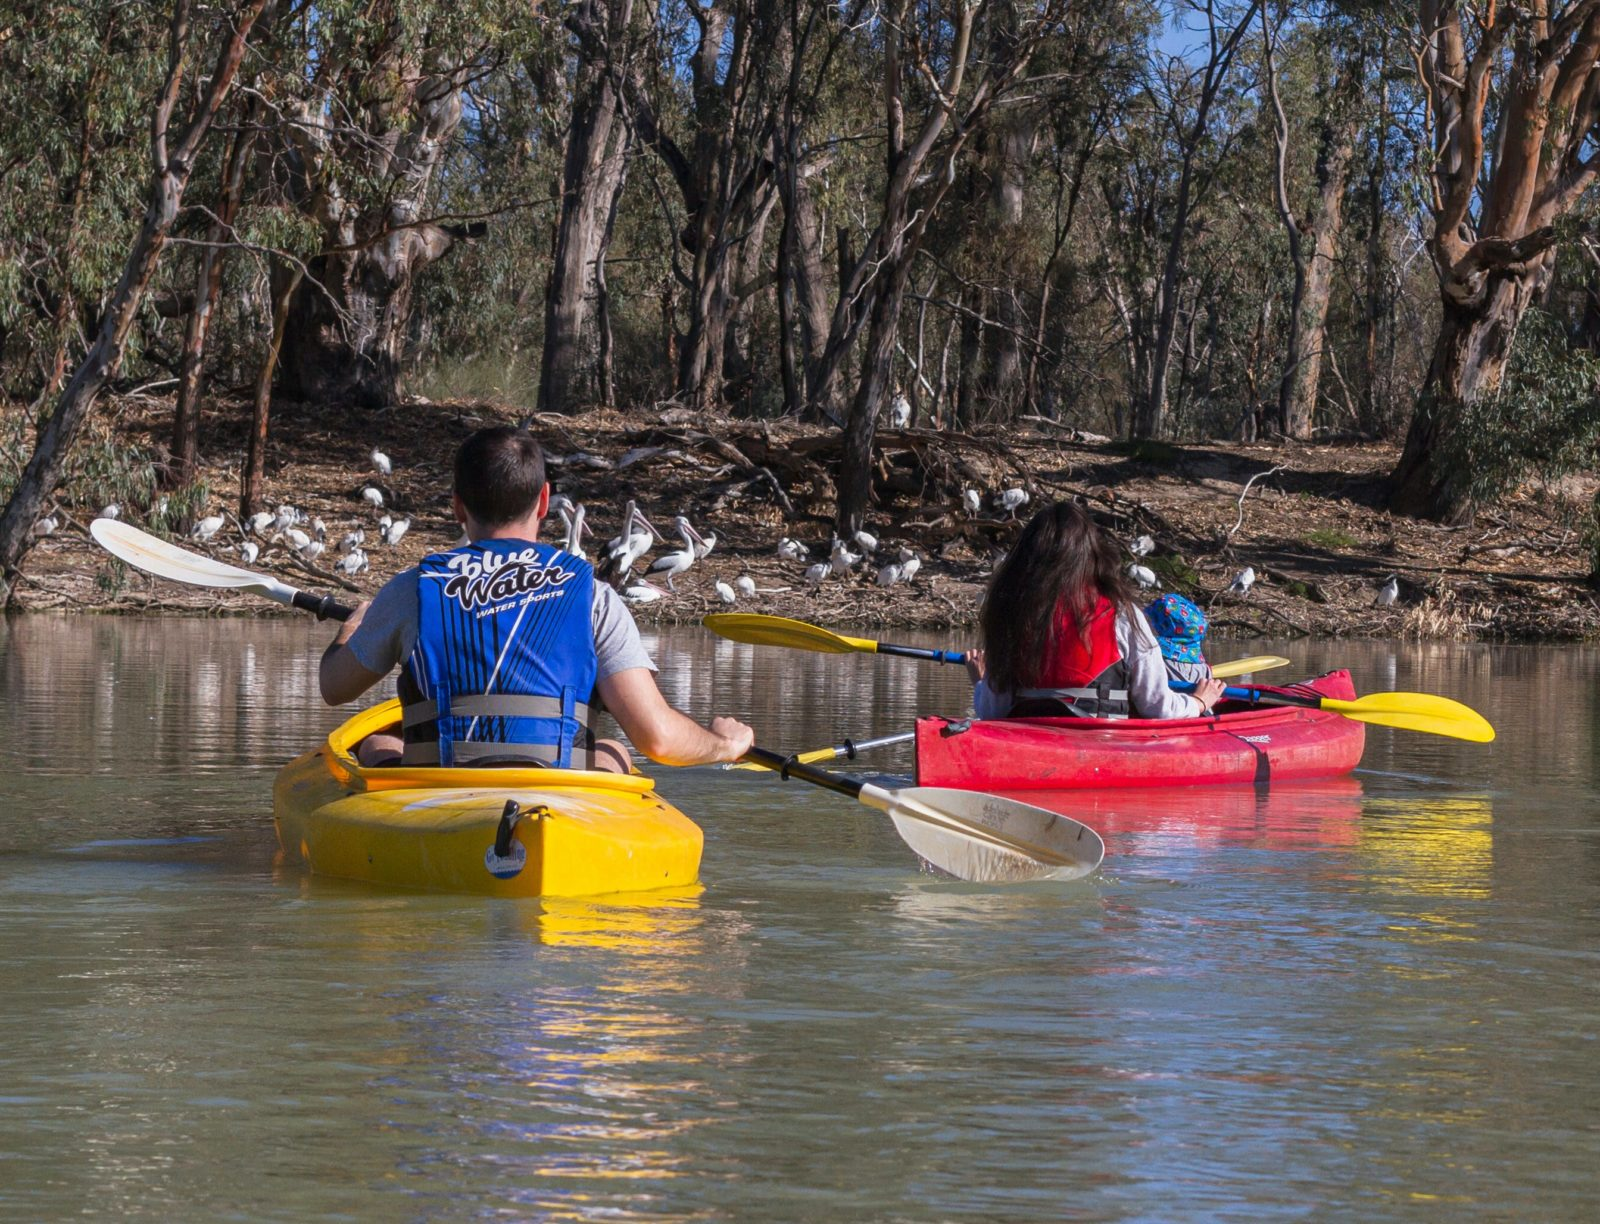 Convenient parking and kayak hire situated right on Renmark's wetland trail